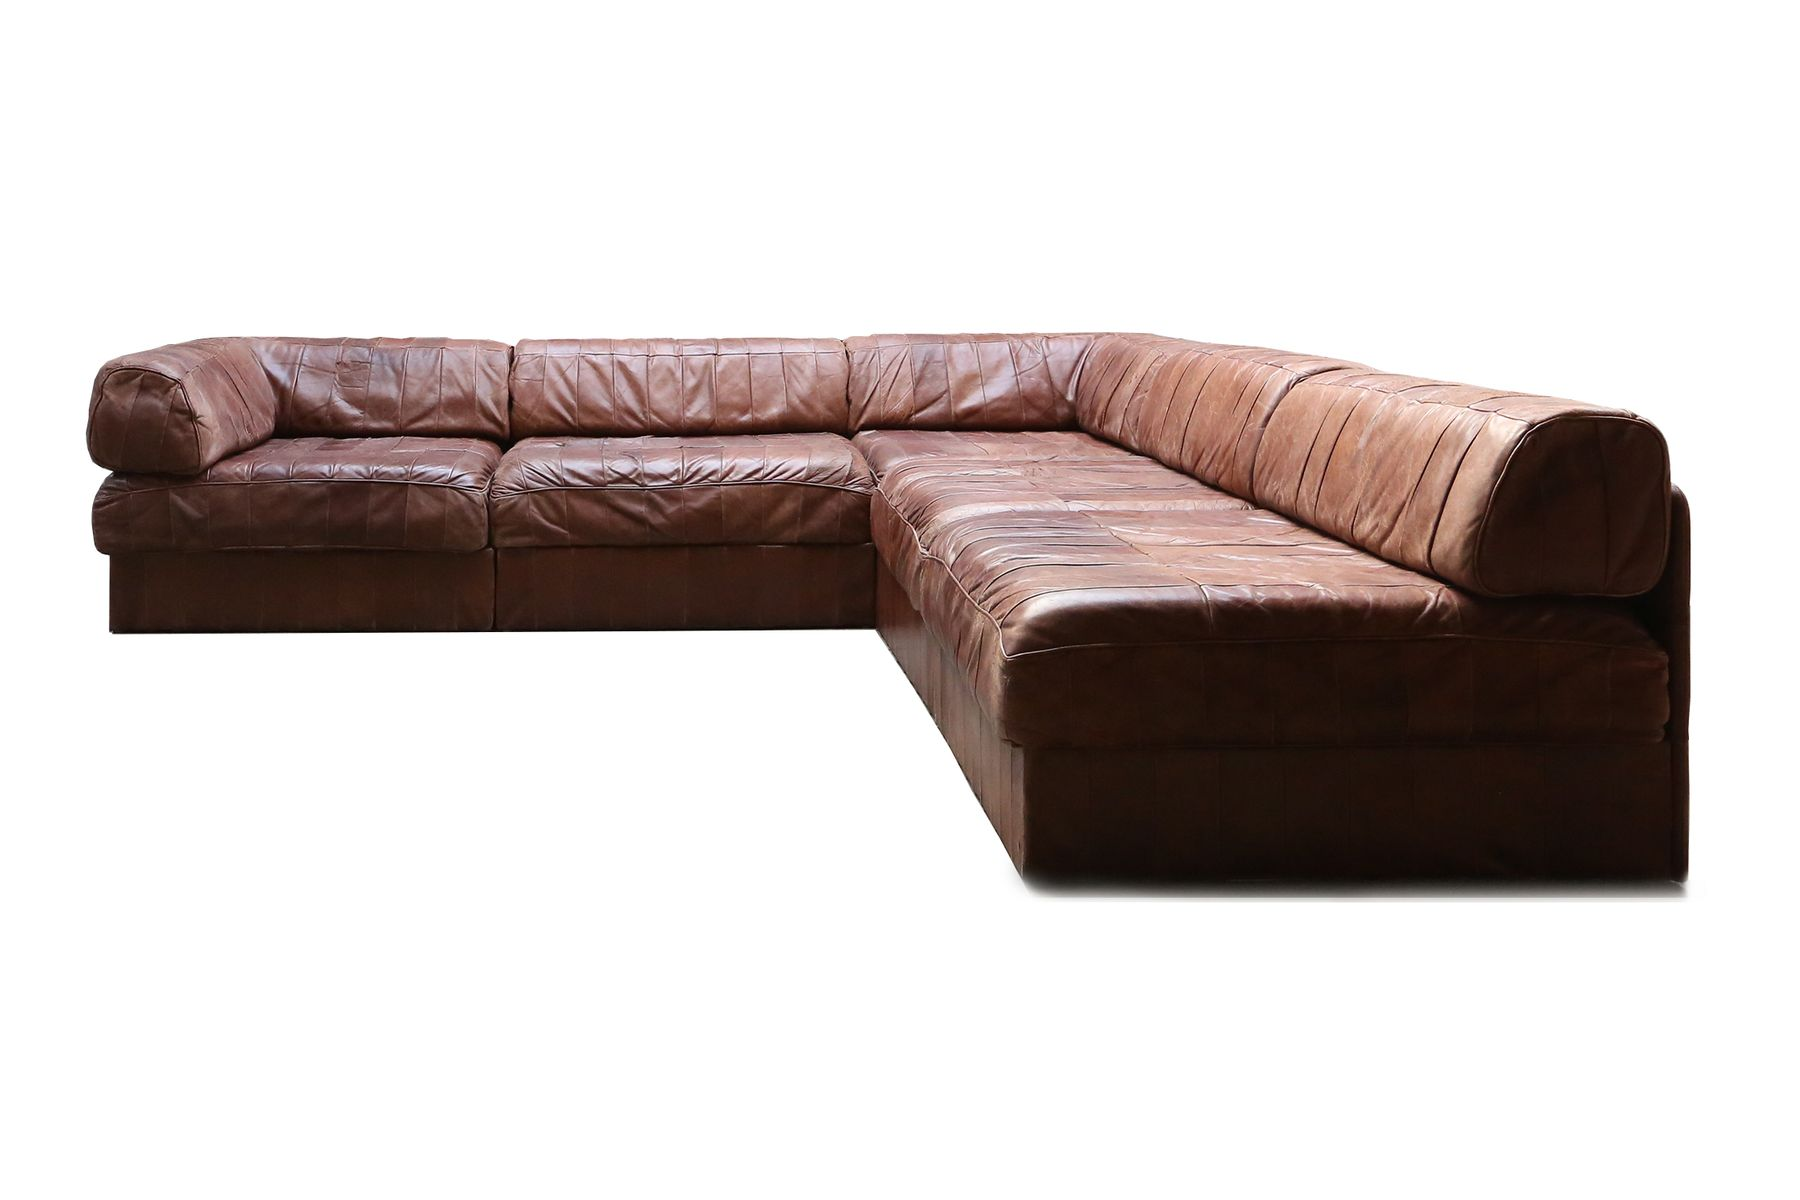 Ds88 Patchwork Modular Sofa From De Sede 1970s For Sale